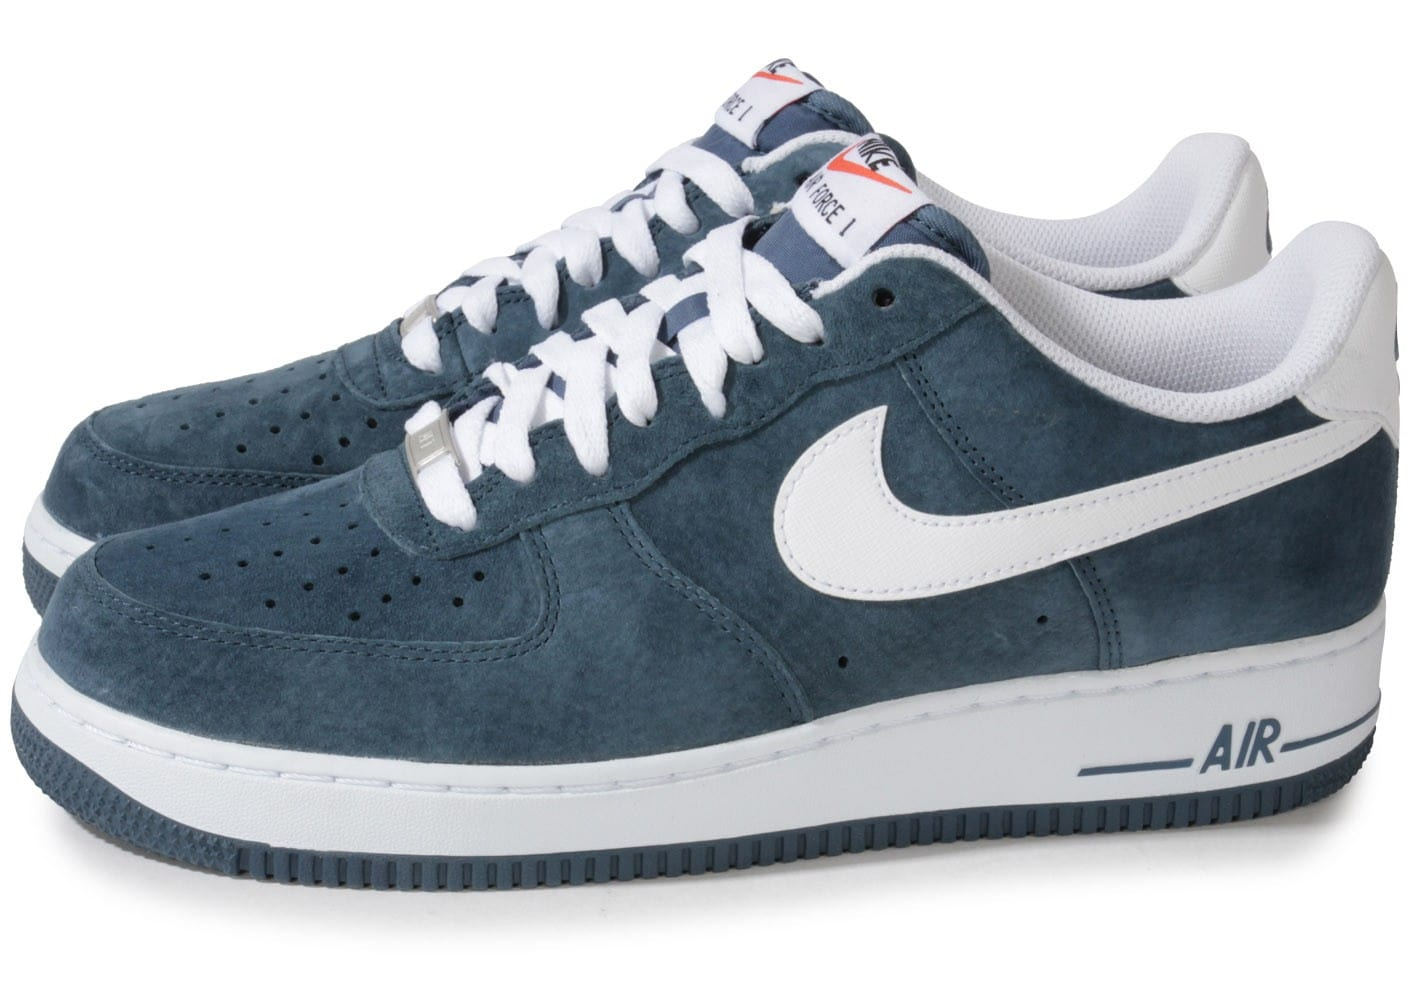 magasin d'usine ee54d 5d568 Nike Air Force 1 Suede Slate Bleue - Chaussures Baskets ...